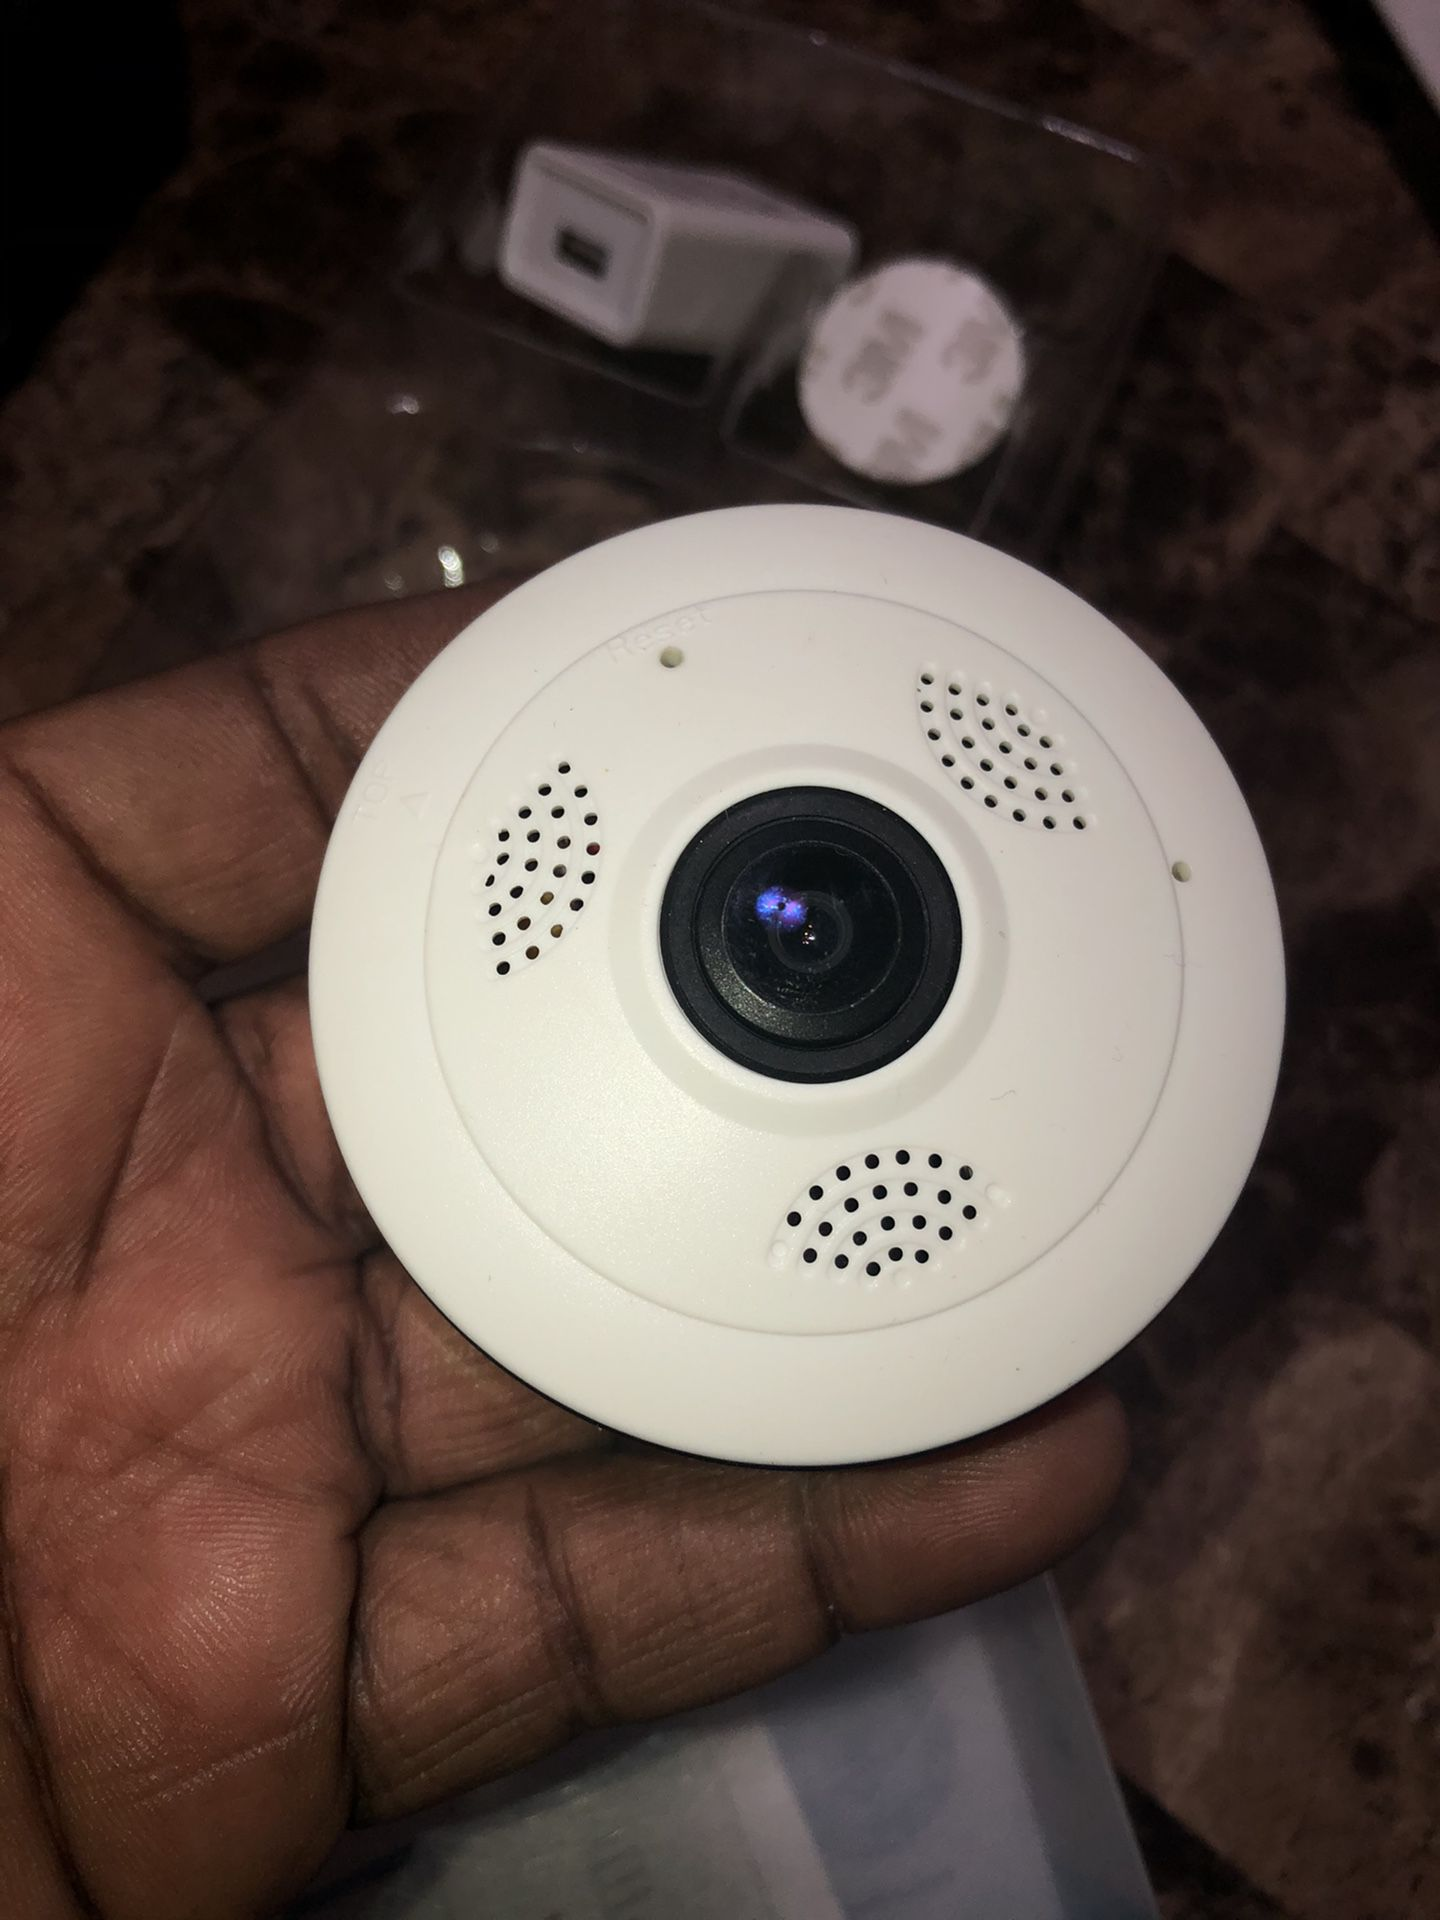 360 pano security camera muti view with sound to listen and push button talk